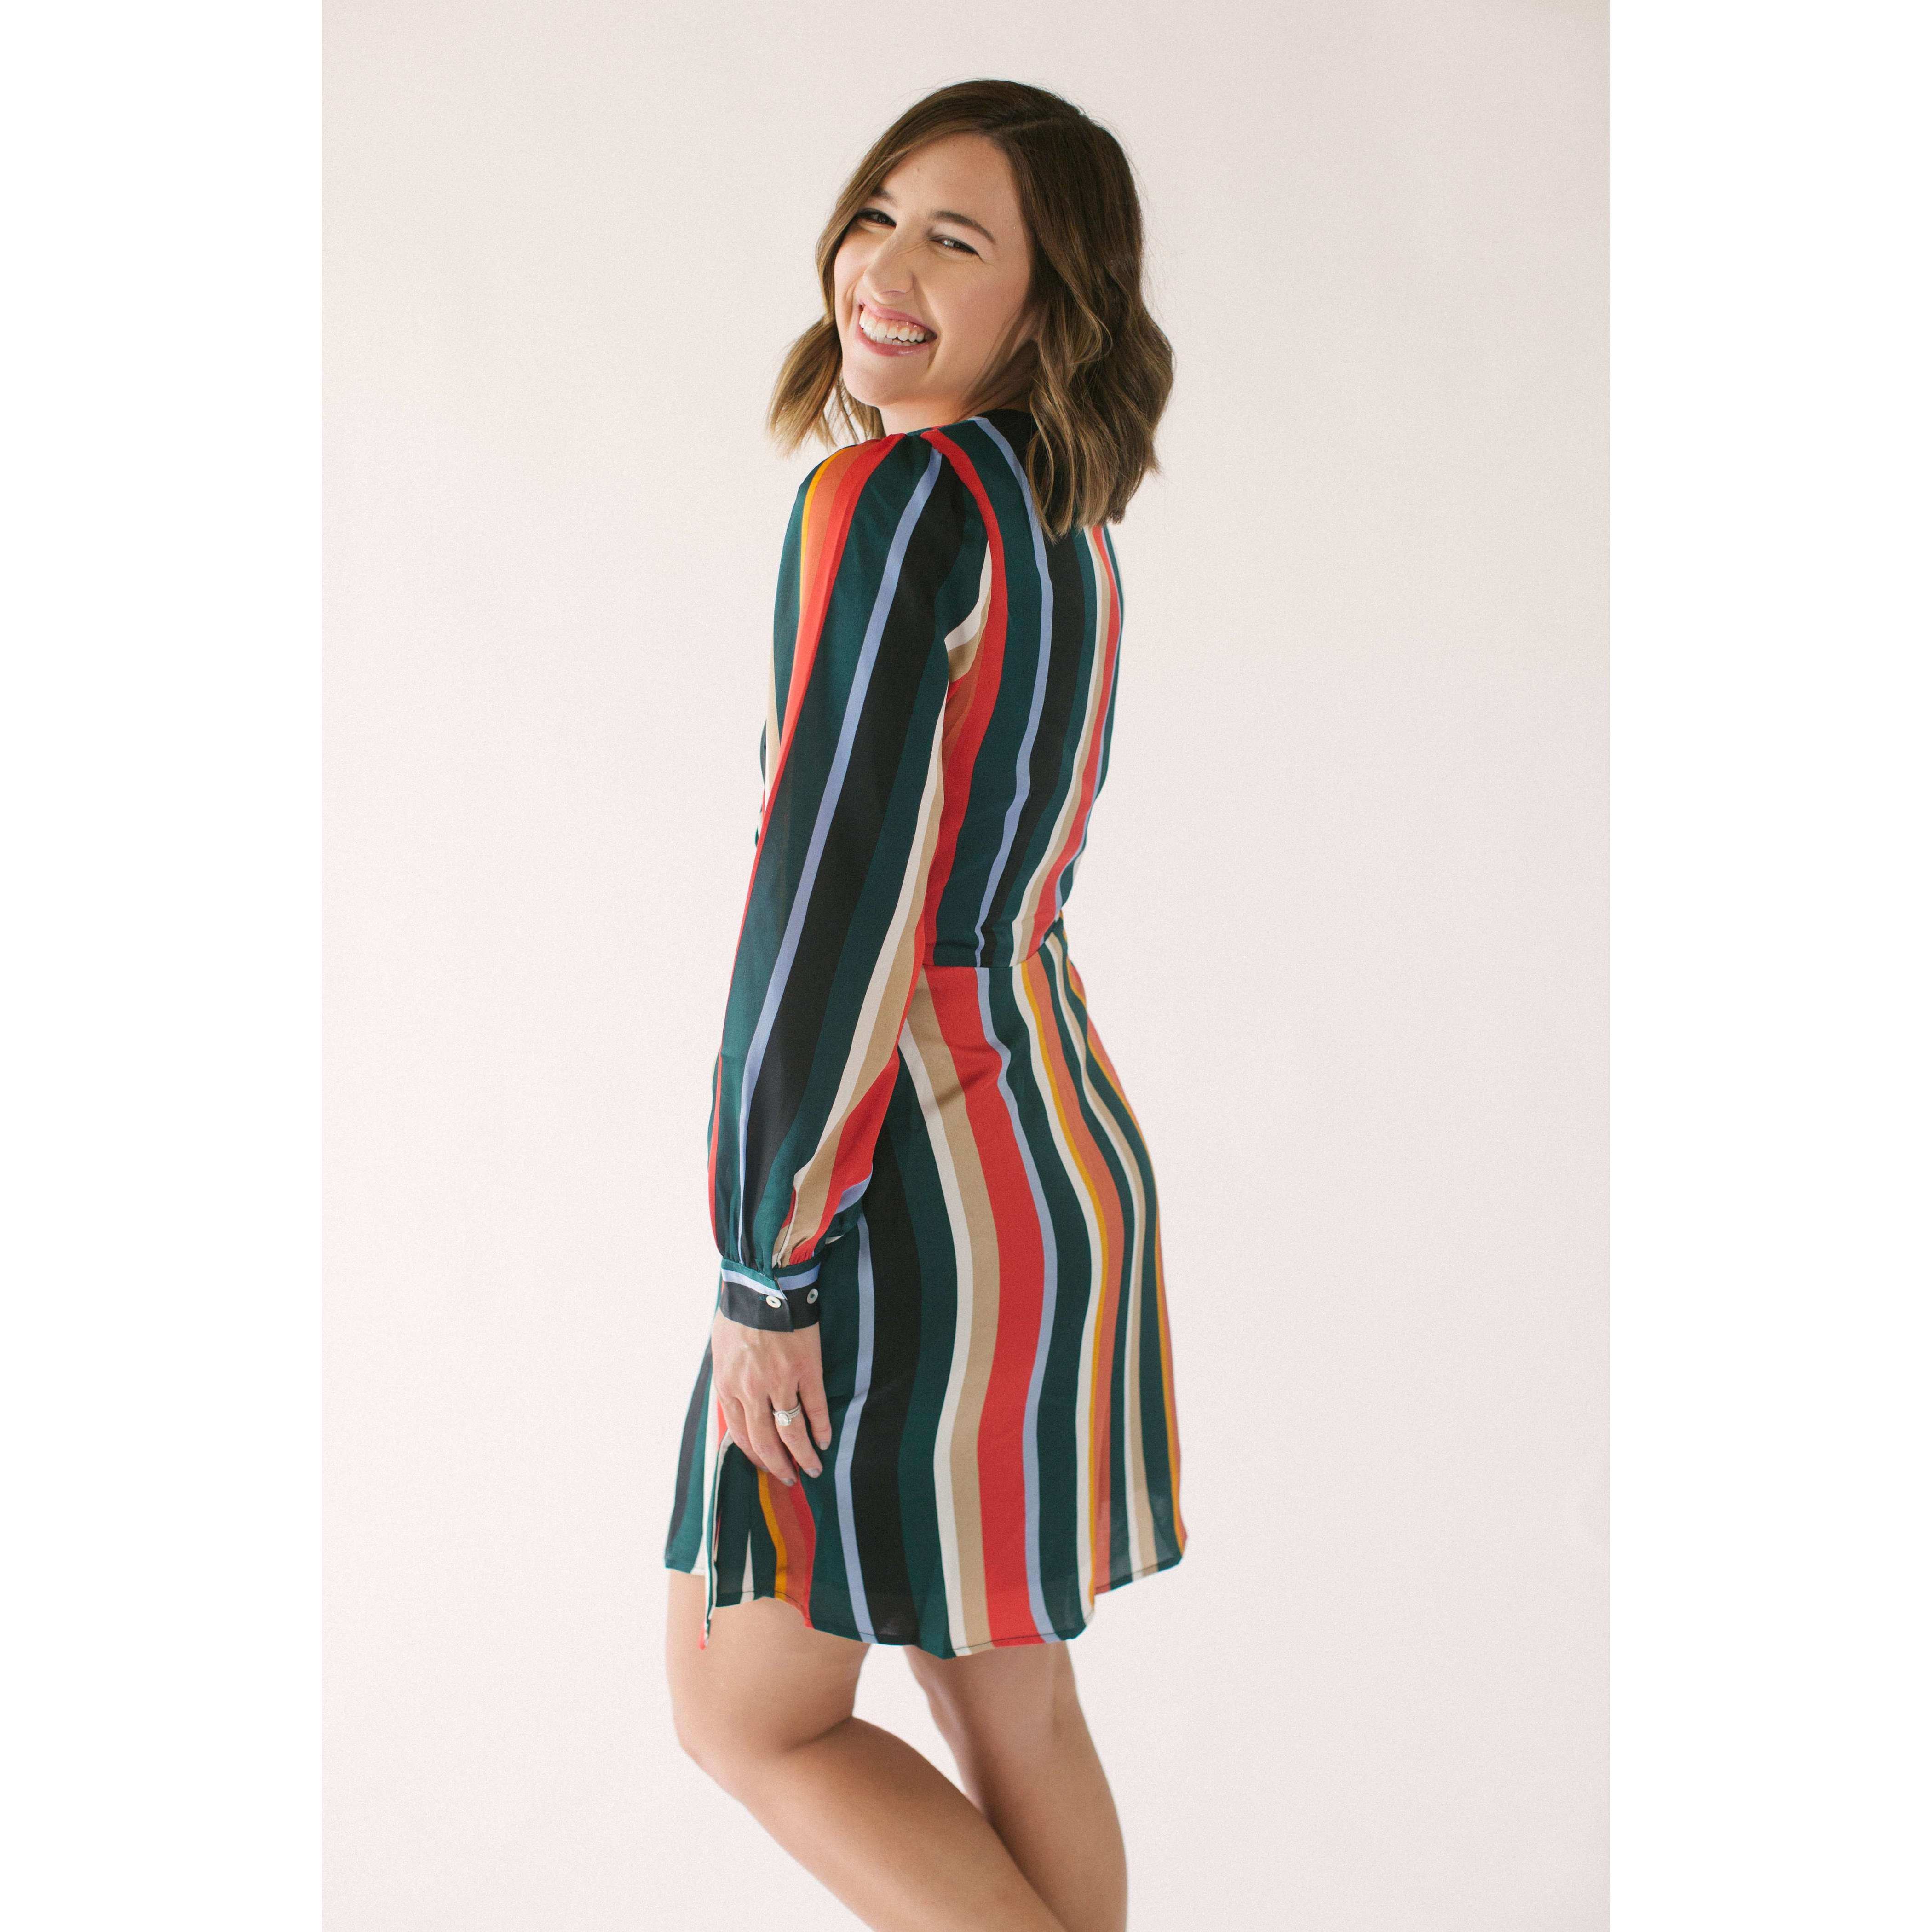 8.28 Boutique:LUCY PARIS,Lucy Paris Bethany Stripe Dress,Dress